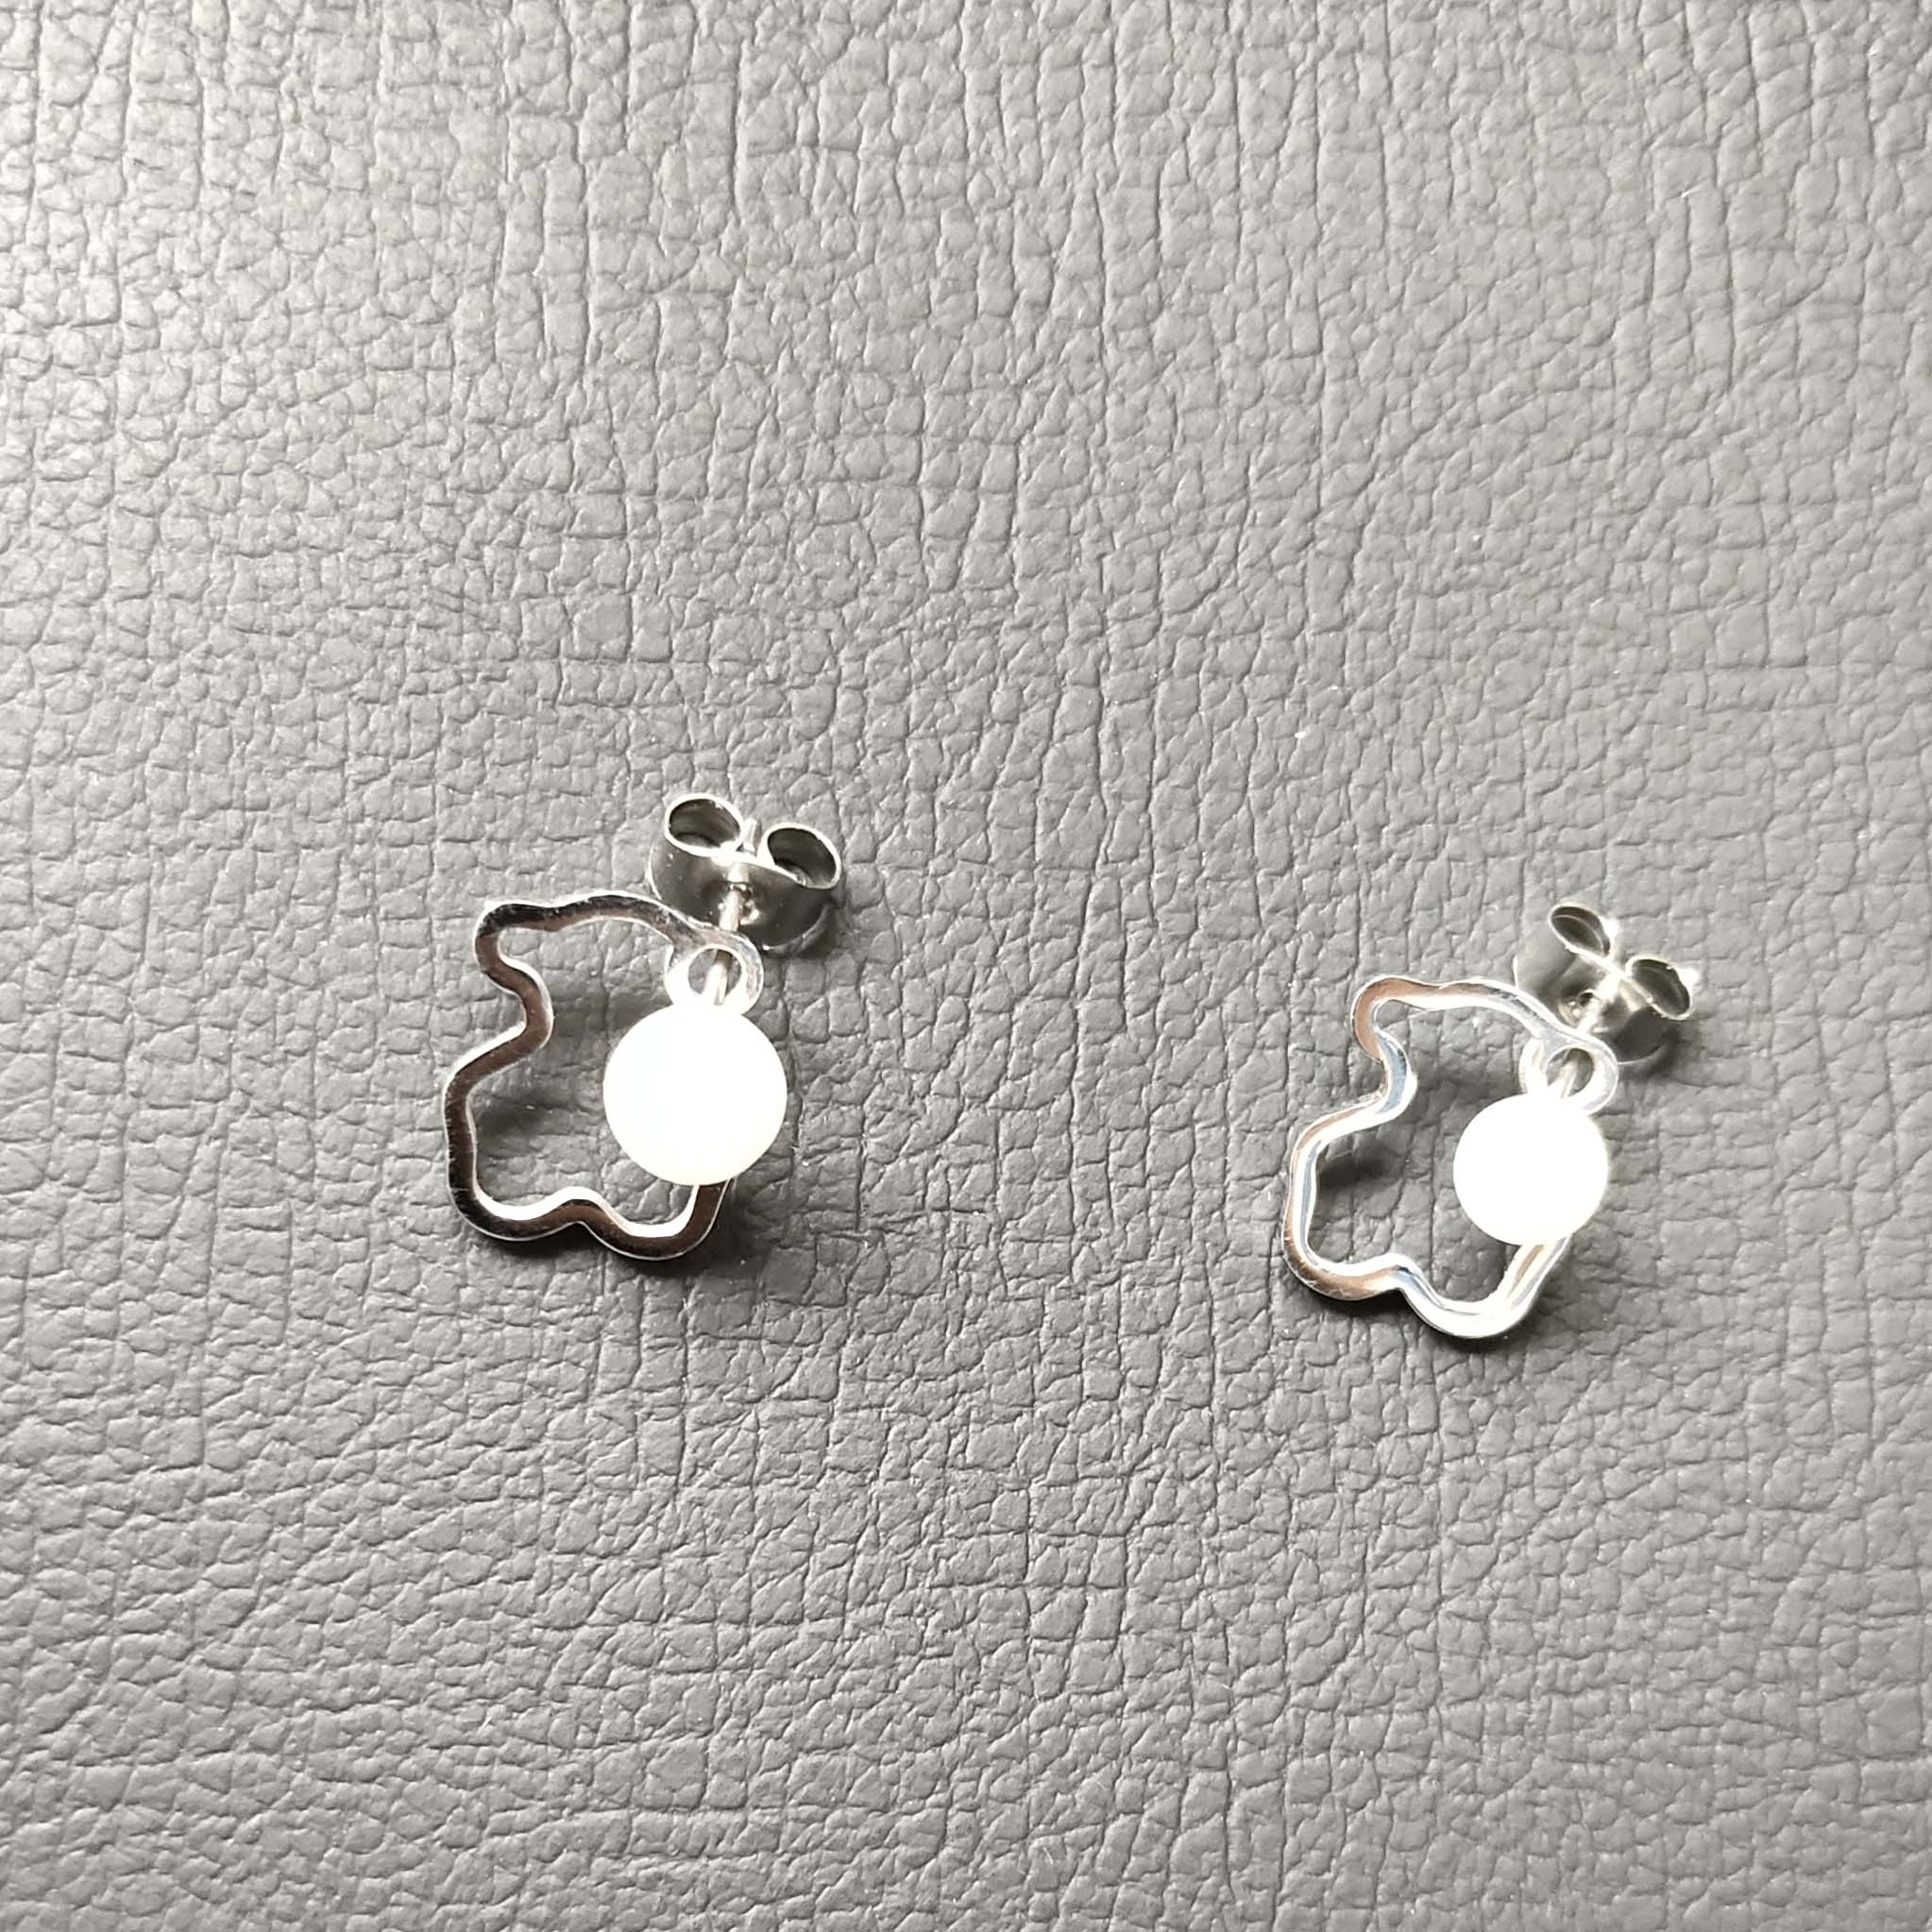 Fashion Jewelry Bear Stainless Steel Factory Wholesale Hollow Simple Earrings Wholesale Aretes De Mujer Modernos 2020